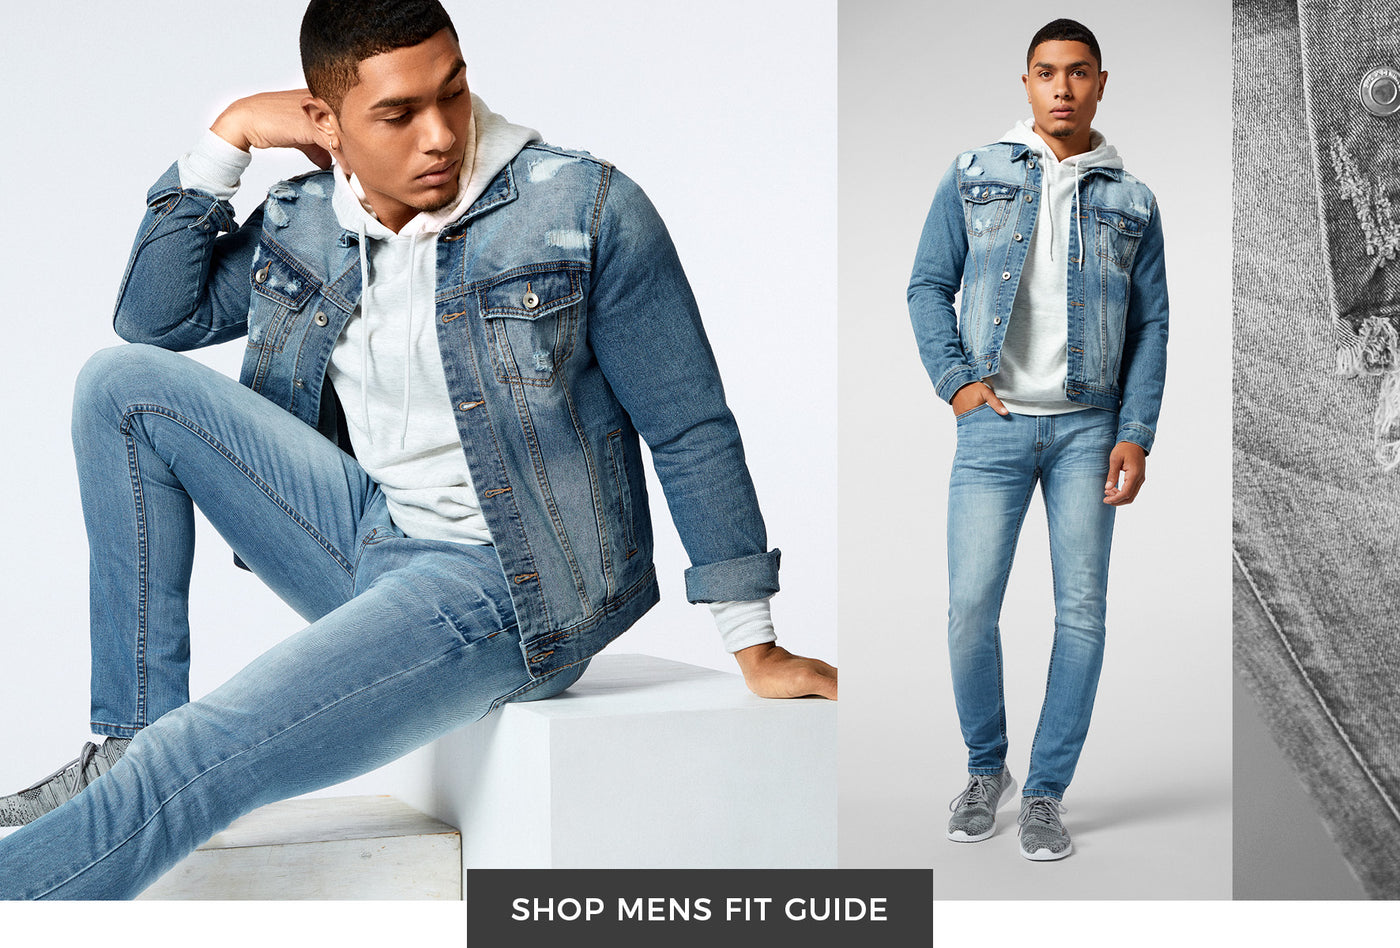 Shop Men's Fit Guide